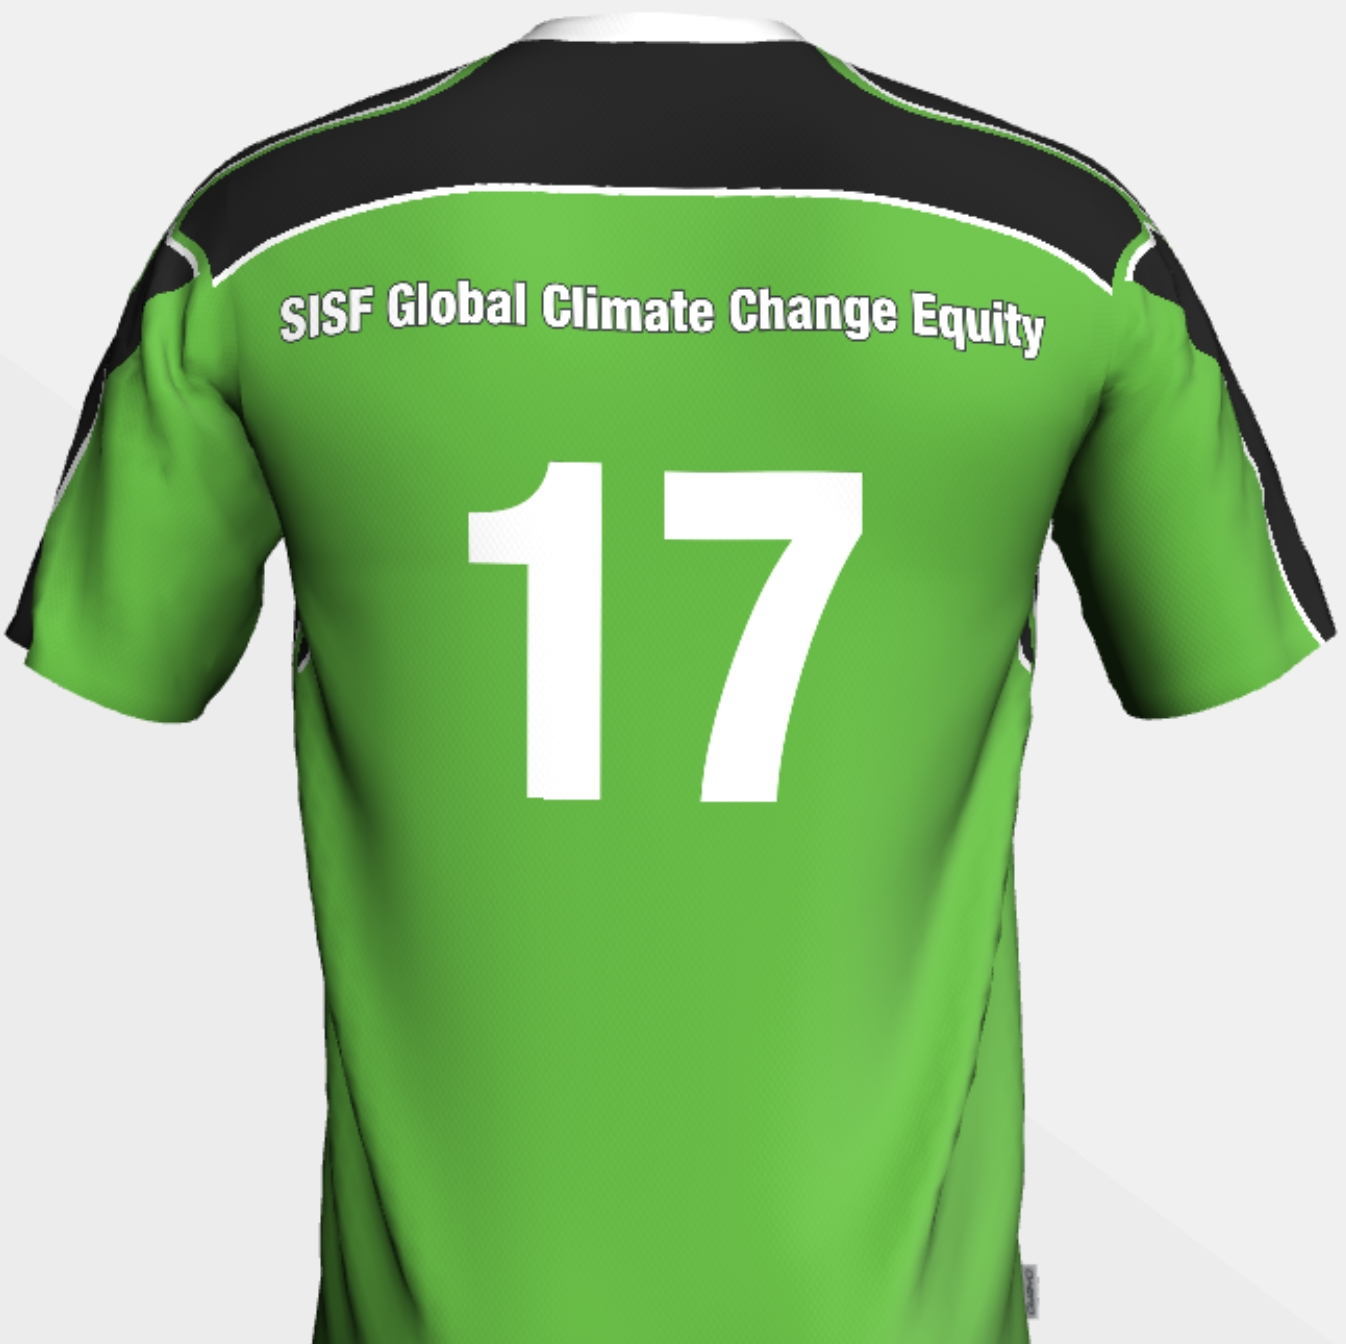 Schroder ISF Global Climate Change Equity EUR A Acc